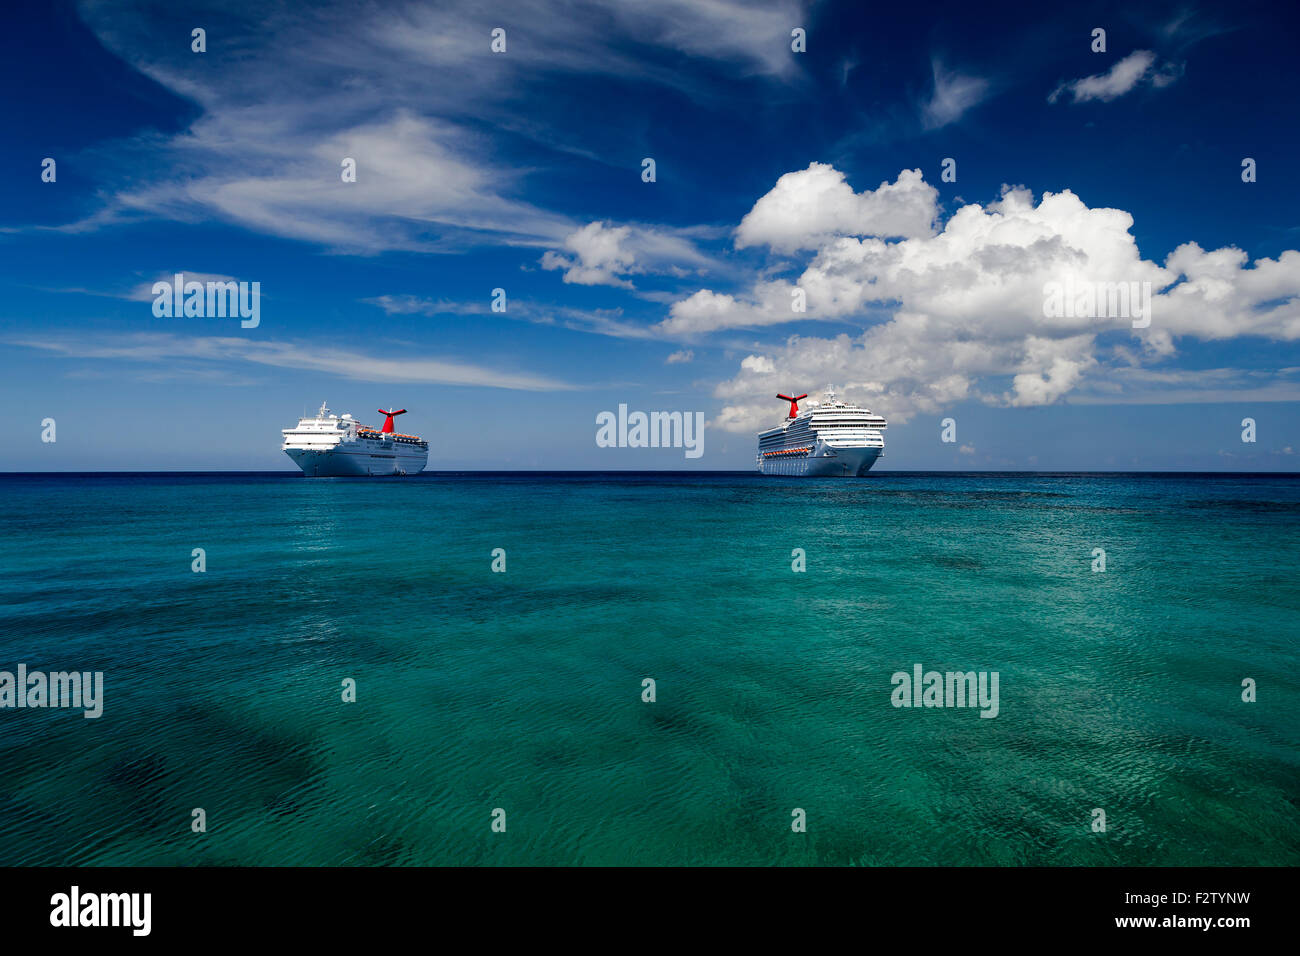 Two carnival cruise ships in the cayman islands - Stock Image